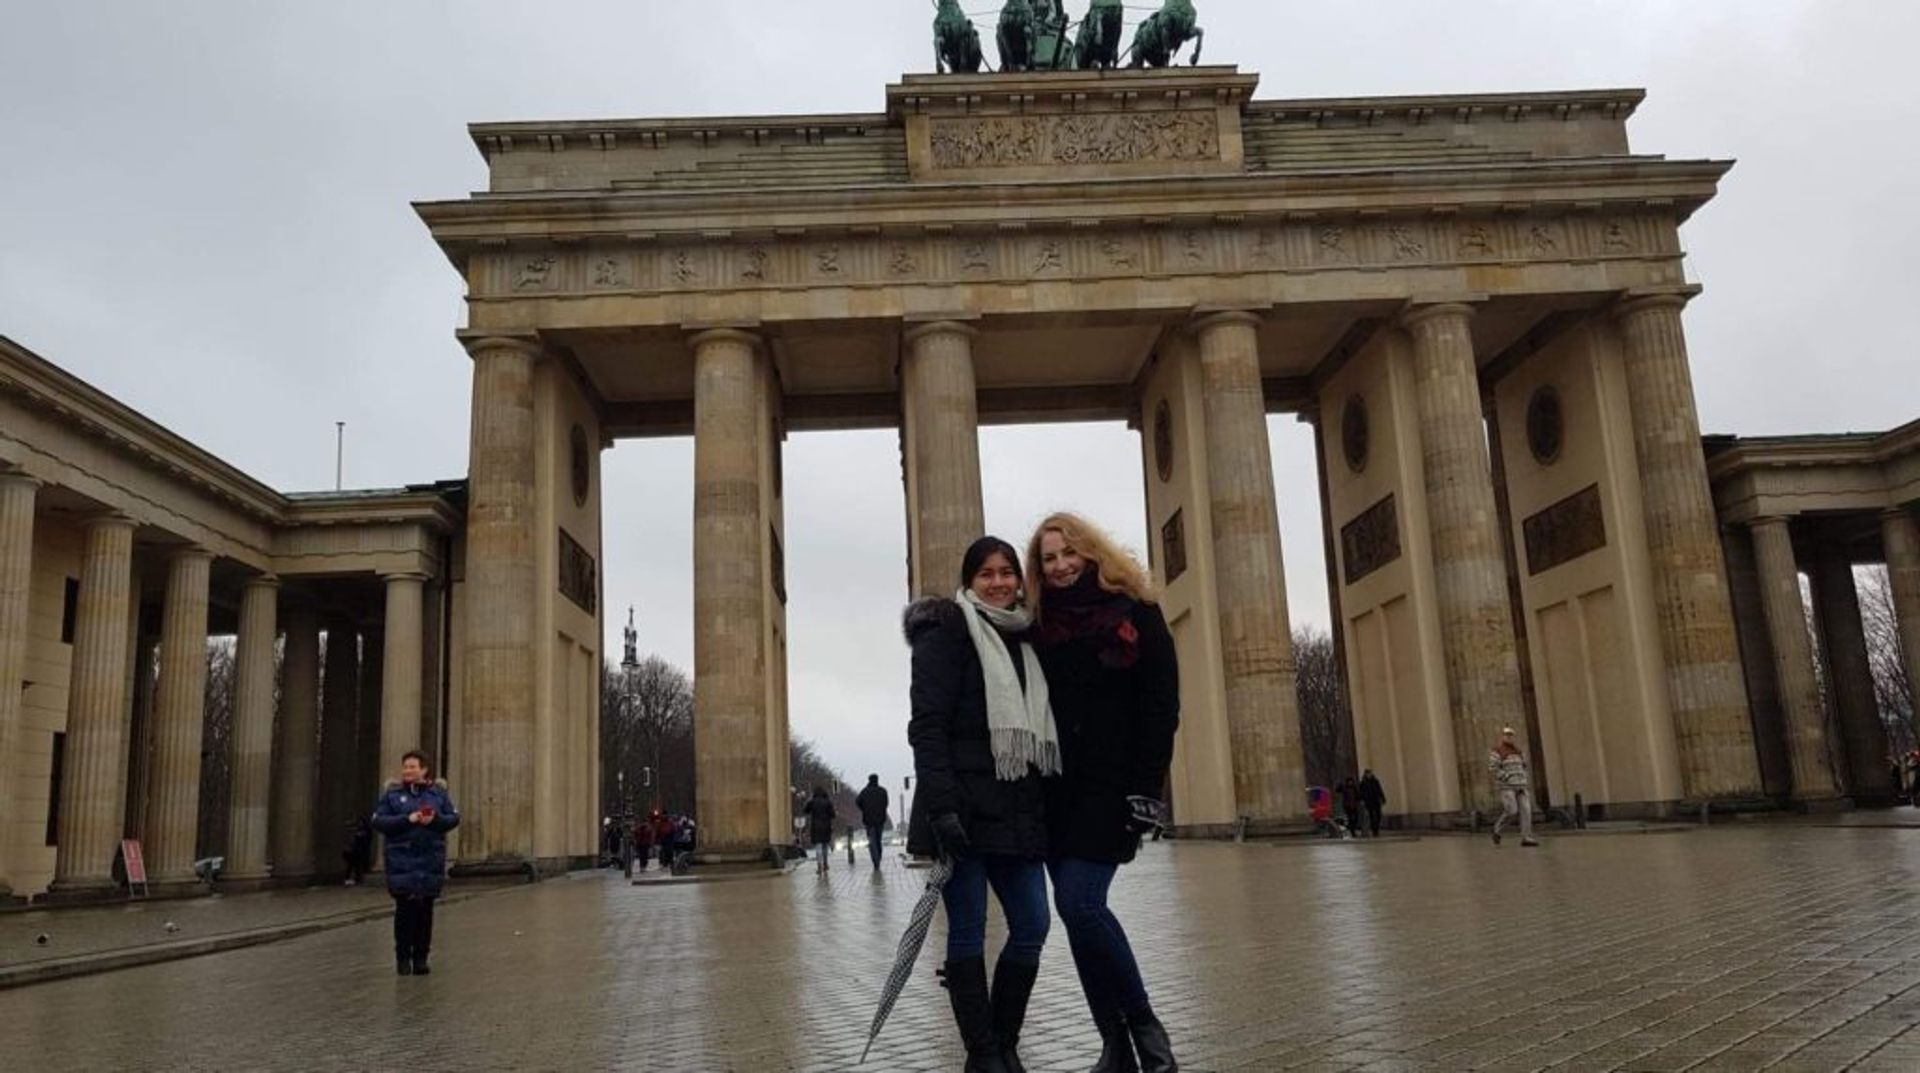 Two students posing for a photo in front of the Brandenburg Gate in Berlin.